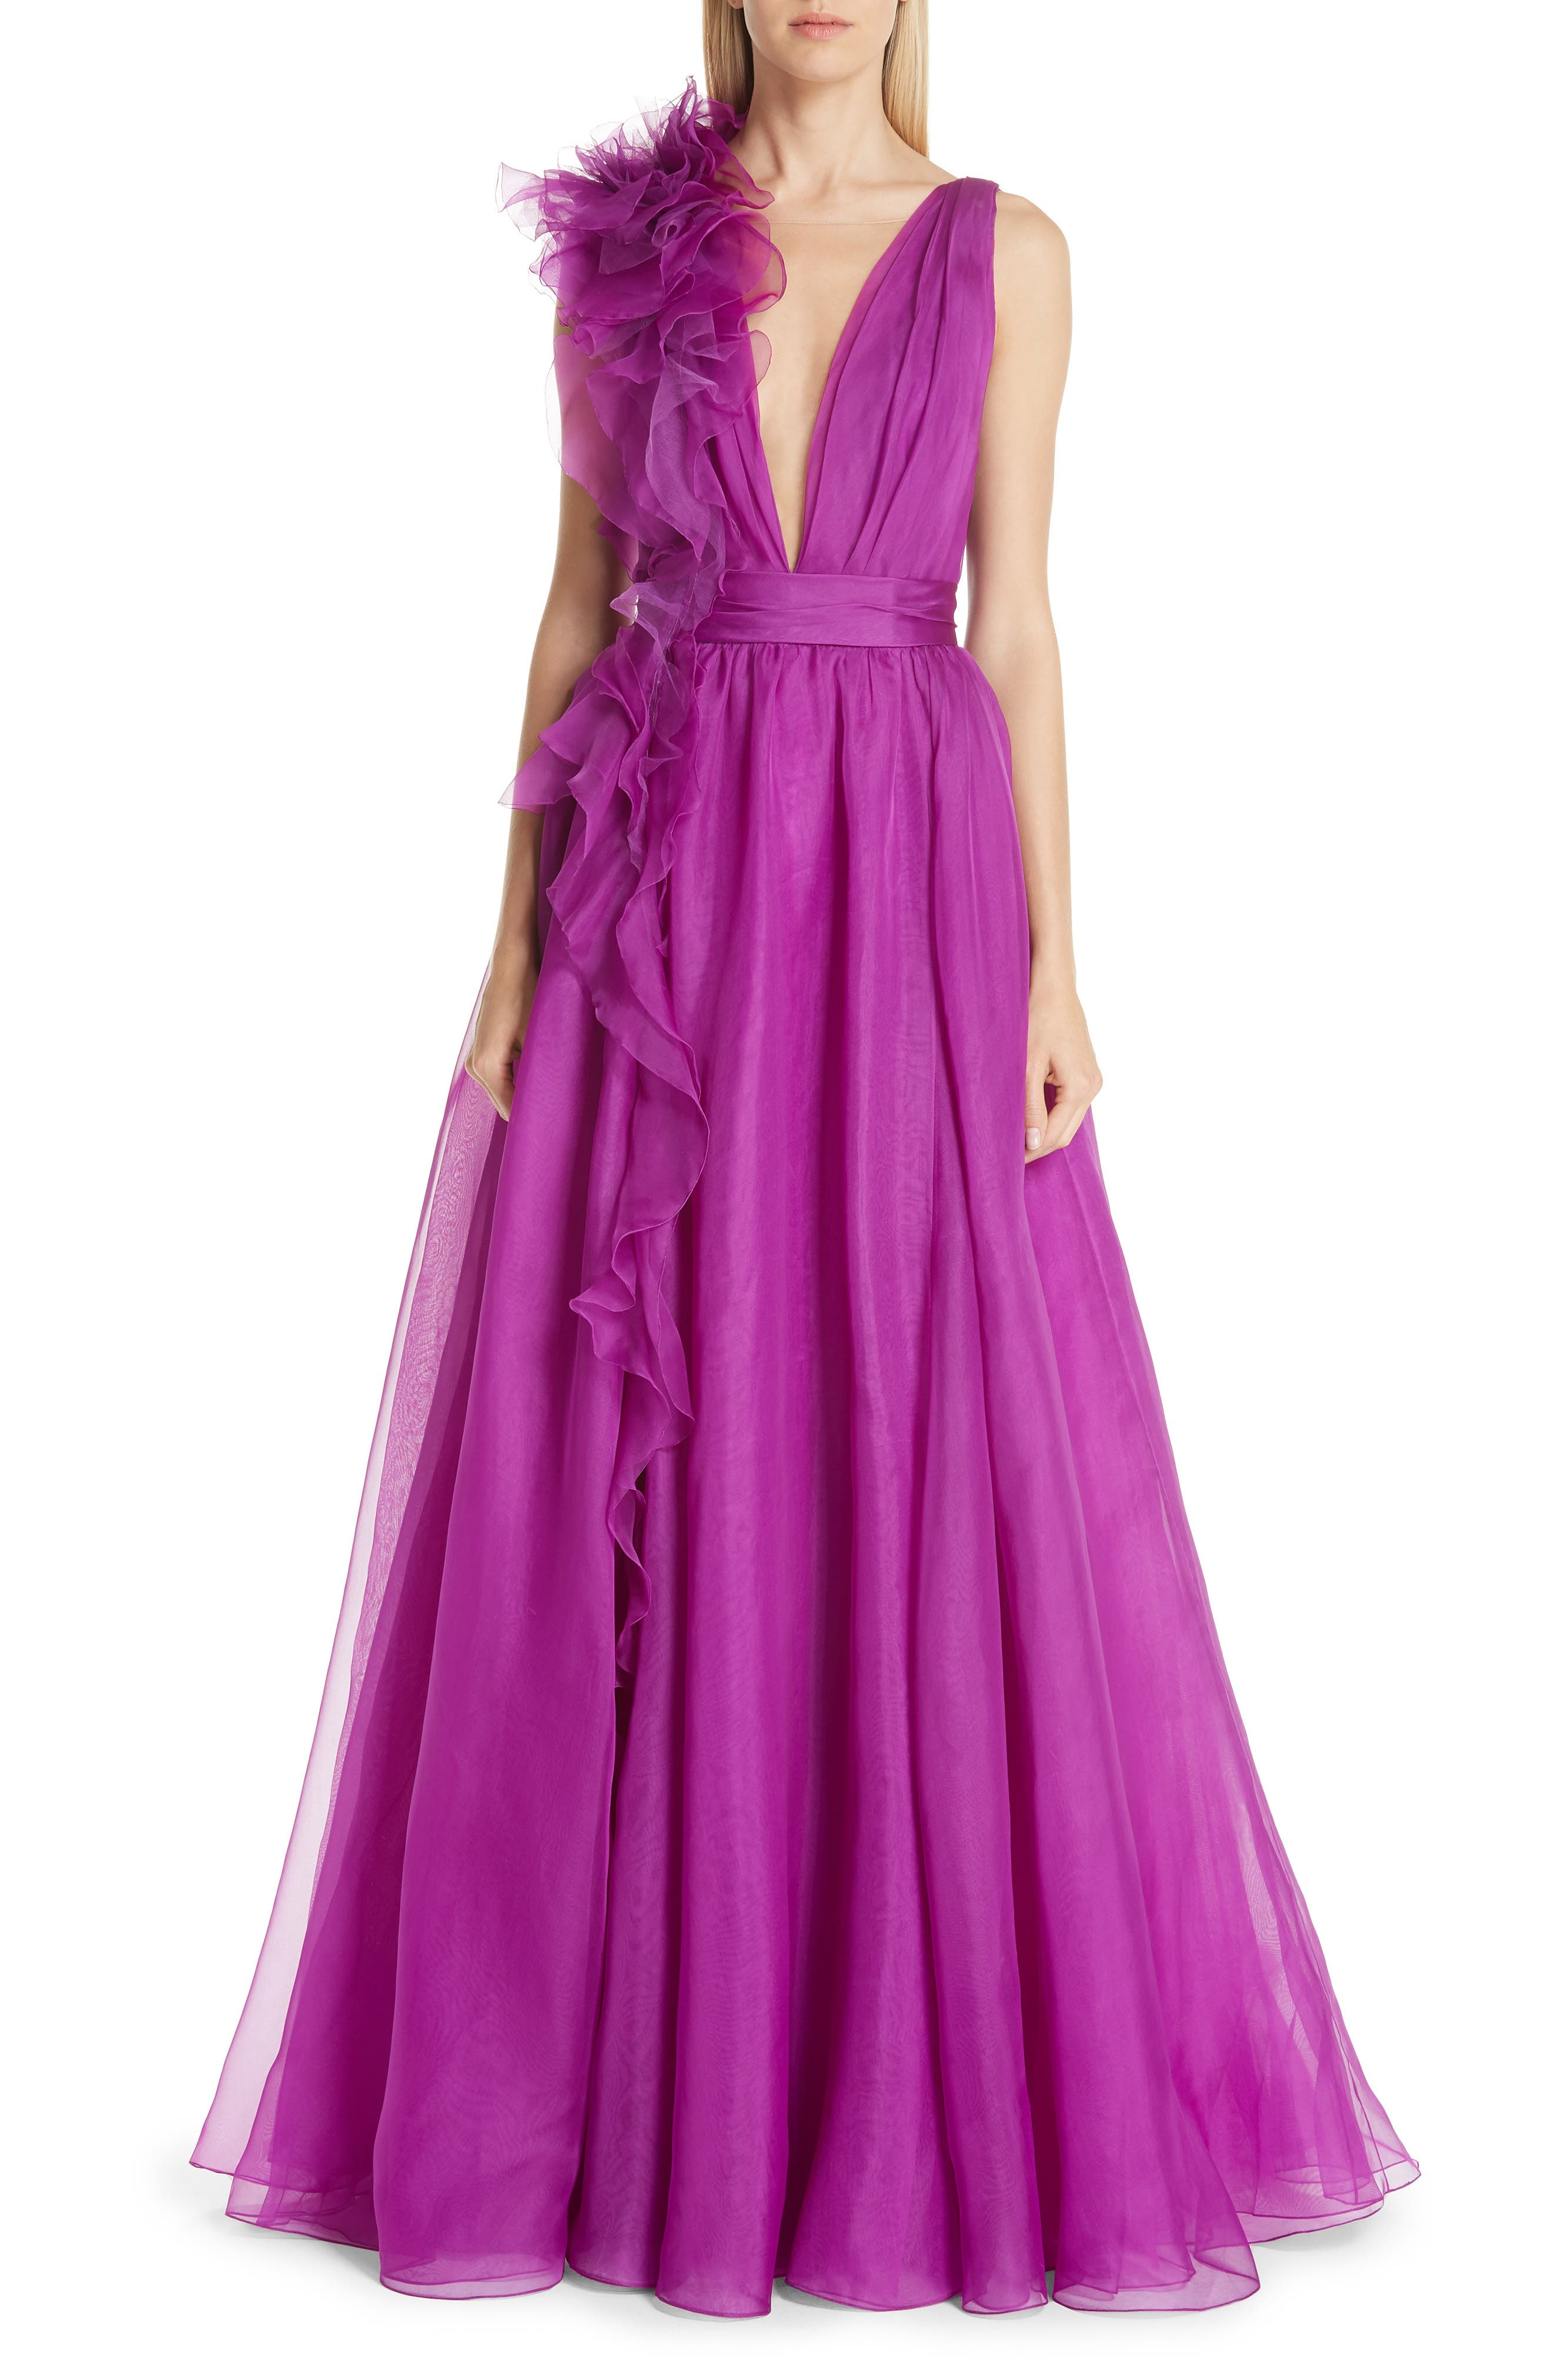 Ruffle Silk Organza Evening Dress,                             Main thumbnail 1, color,                             ORCHID